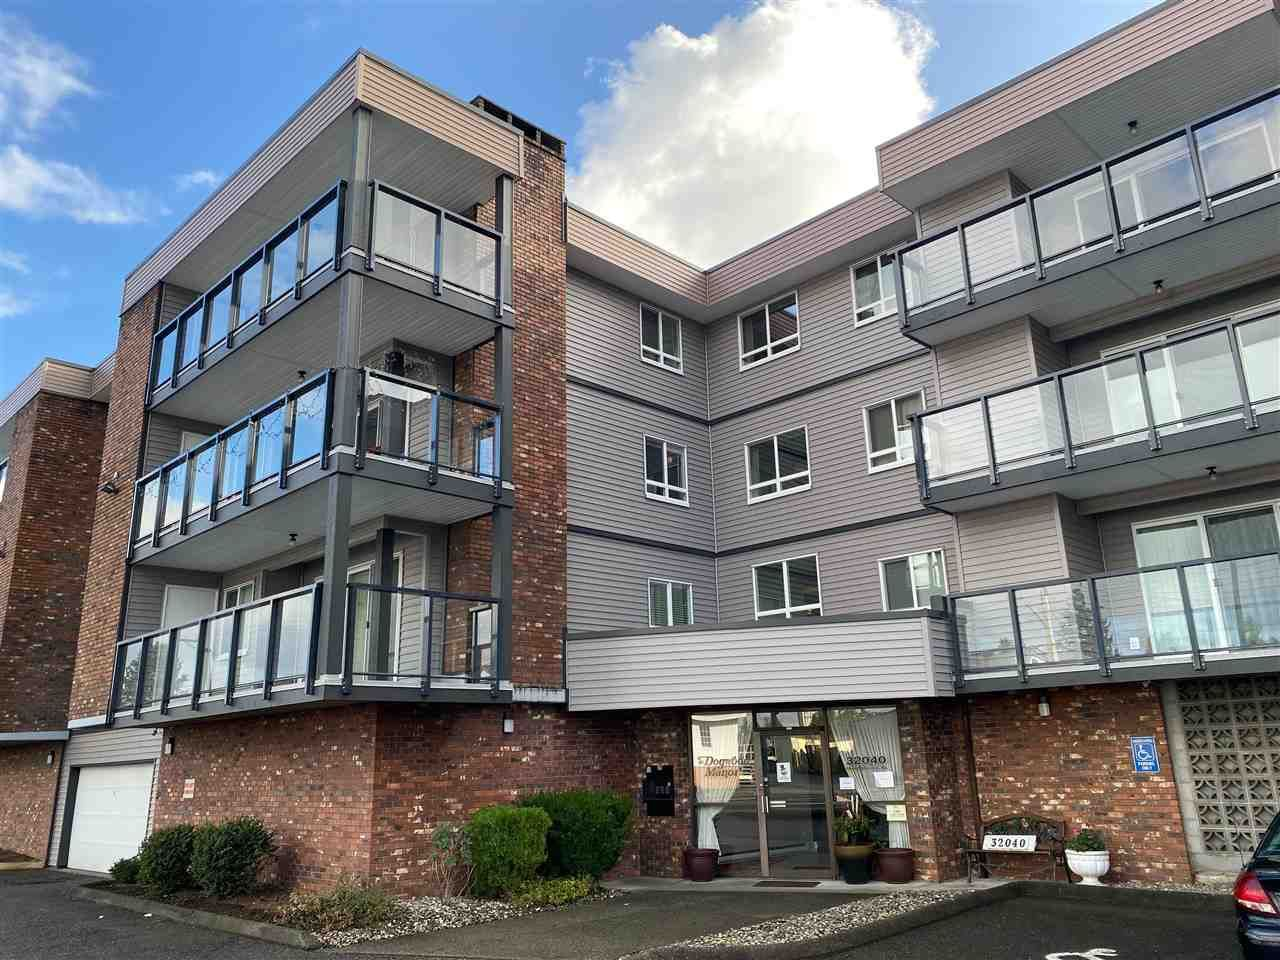 Main Photo: 307 32040 PEARDONVILLE ROAD in Abbotsford: Abbotsford West Condo for sale : MLS®# R2526573